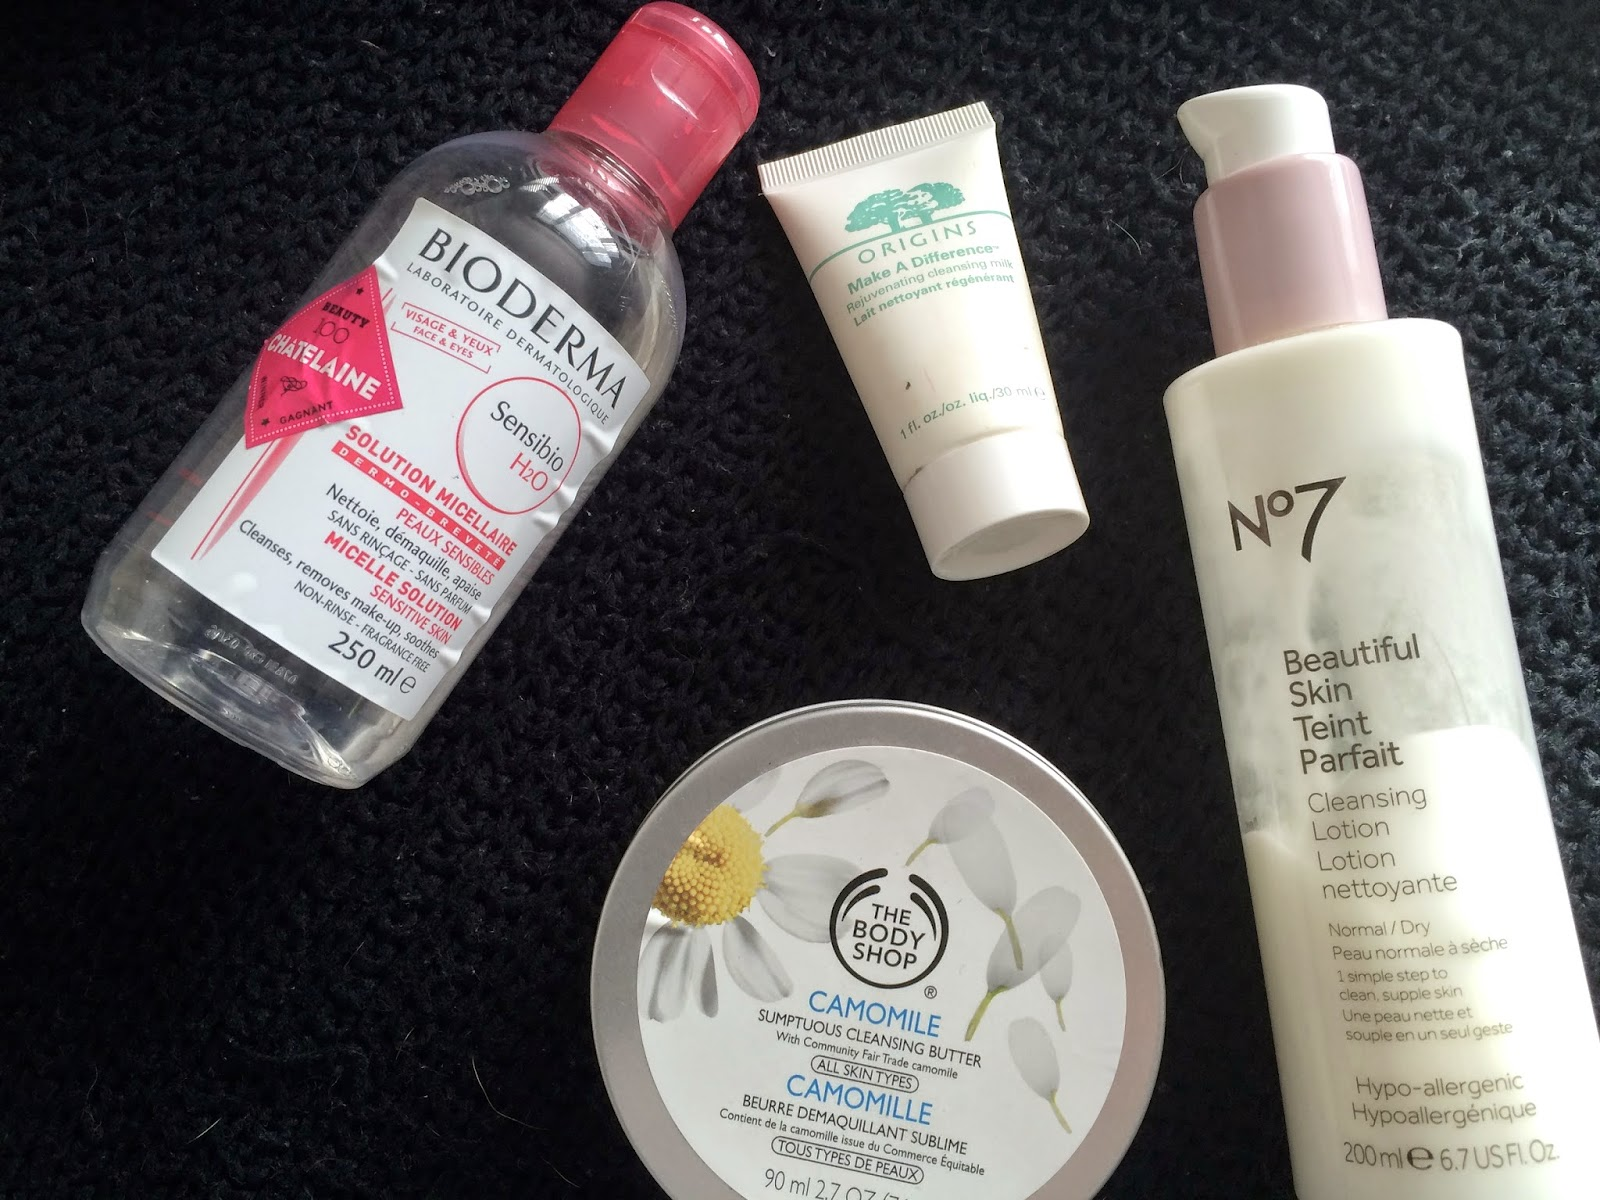 cleanser, remover, bioderma h2o micellar, the body shop, milk, balm